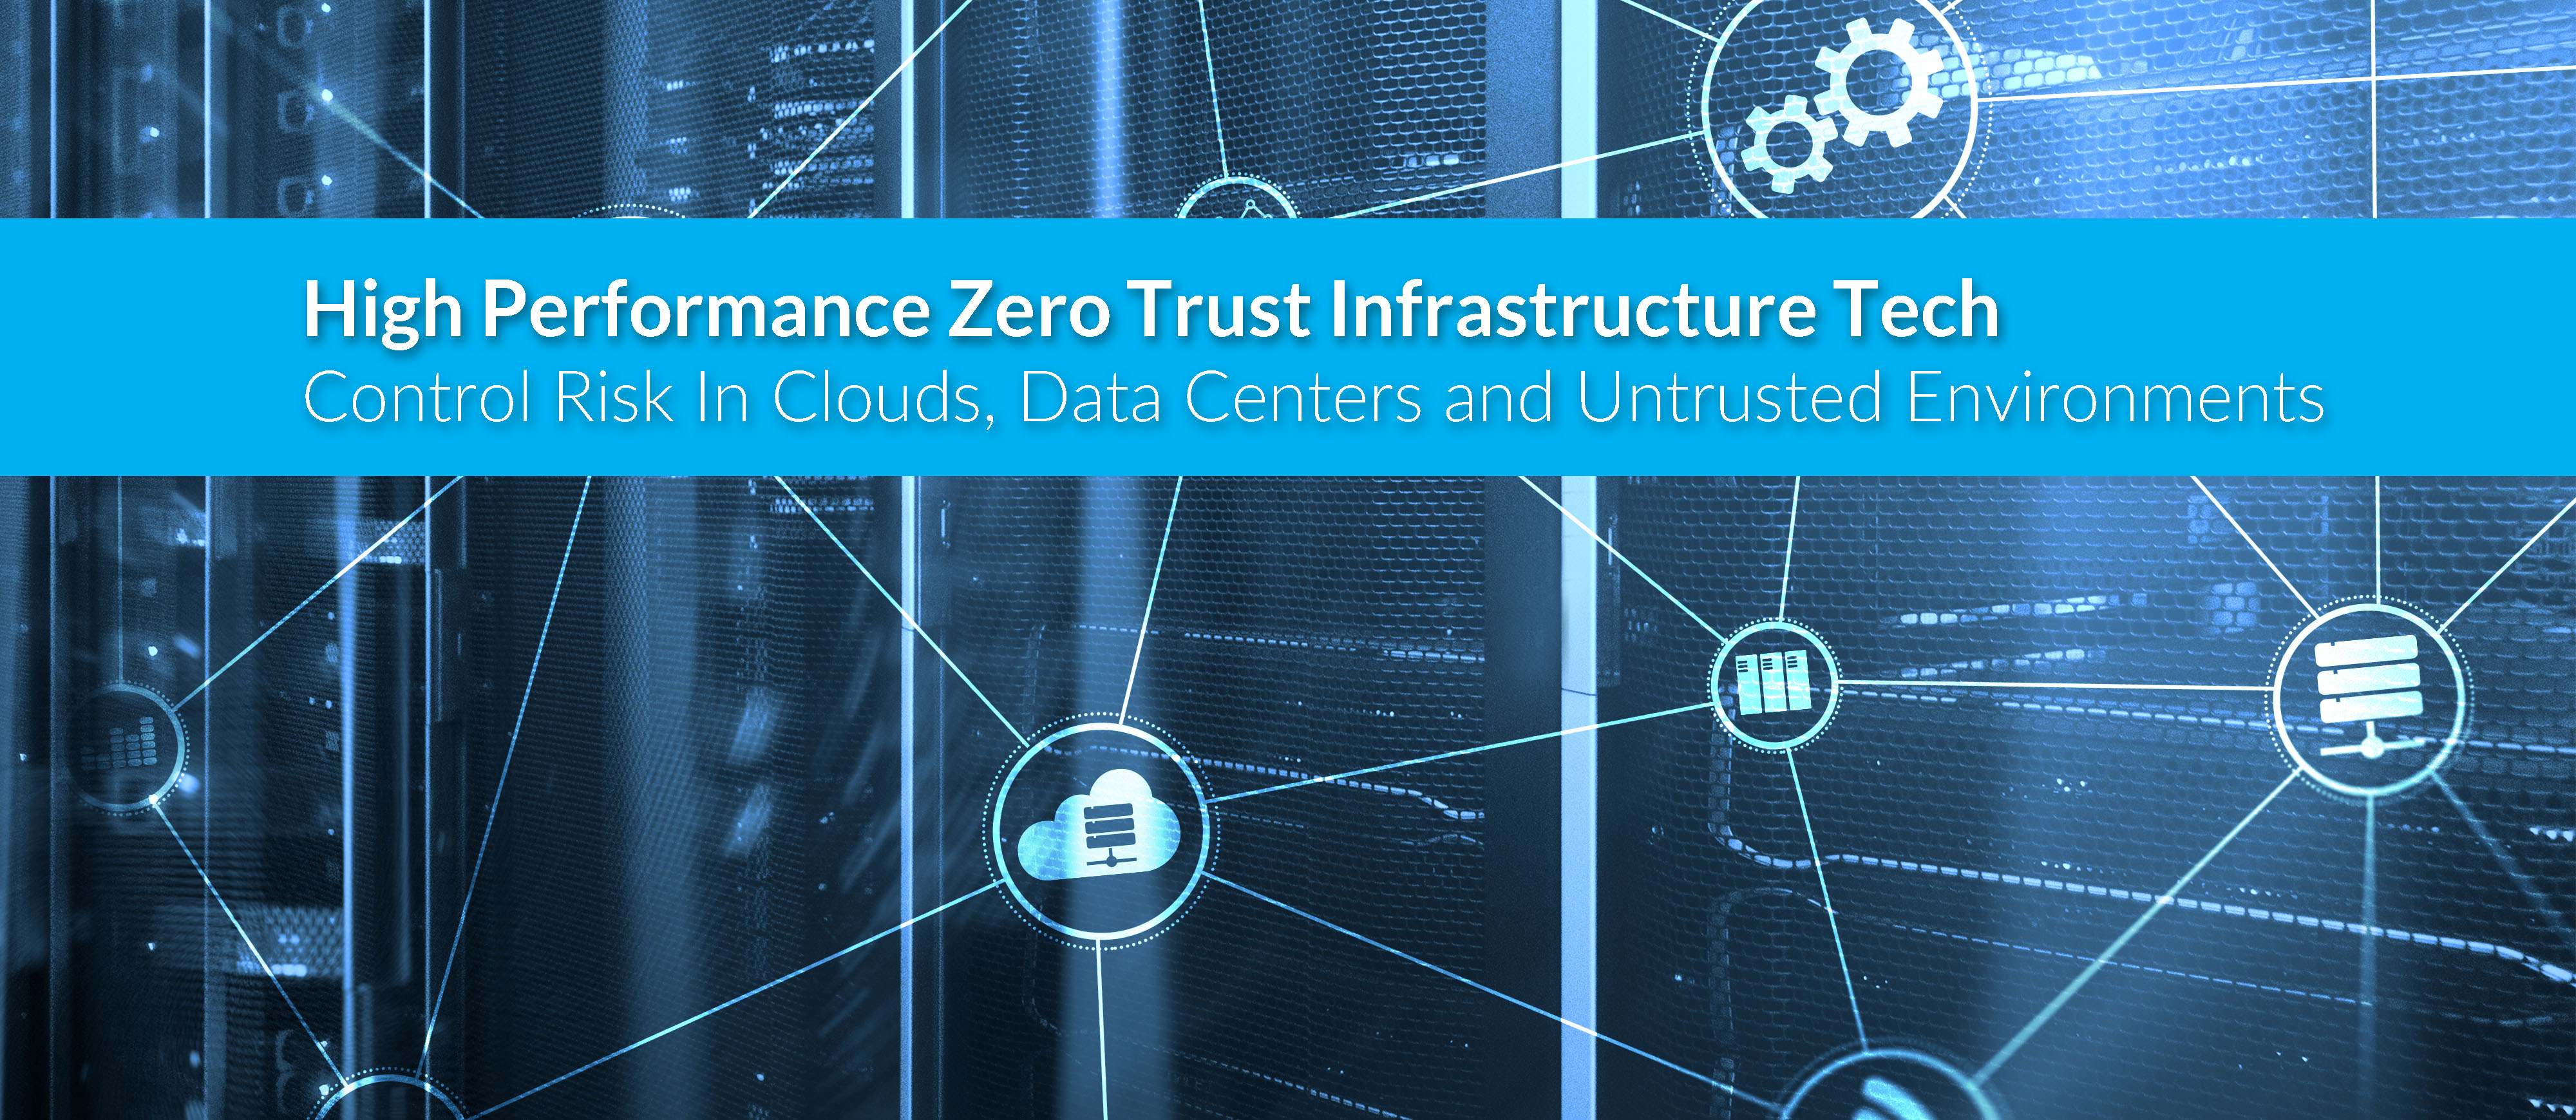 High Performance Zero Trust Infrastructure Tech